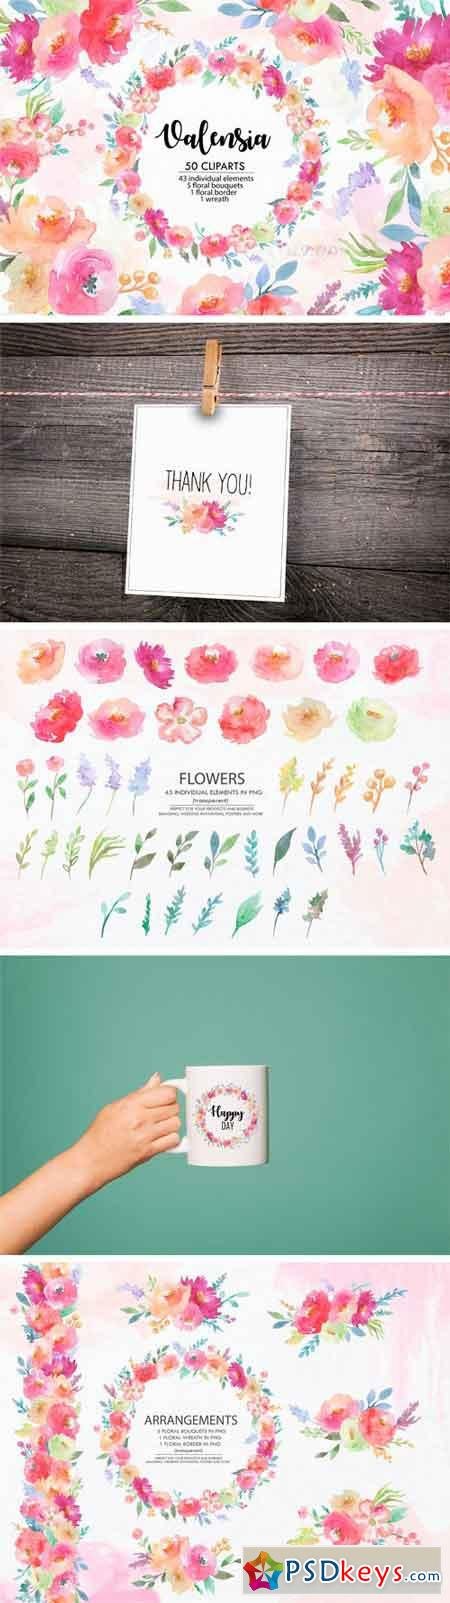 Valensia Floral Clipart Watercolor 2370436